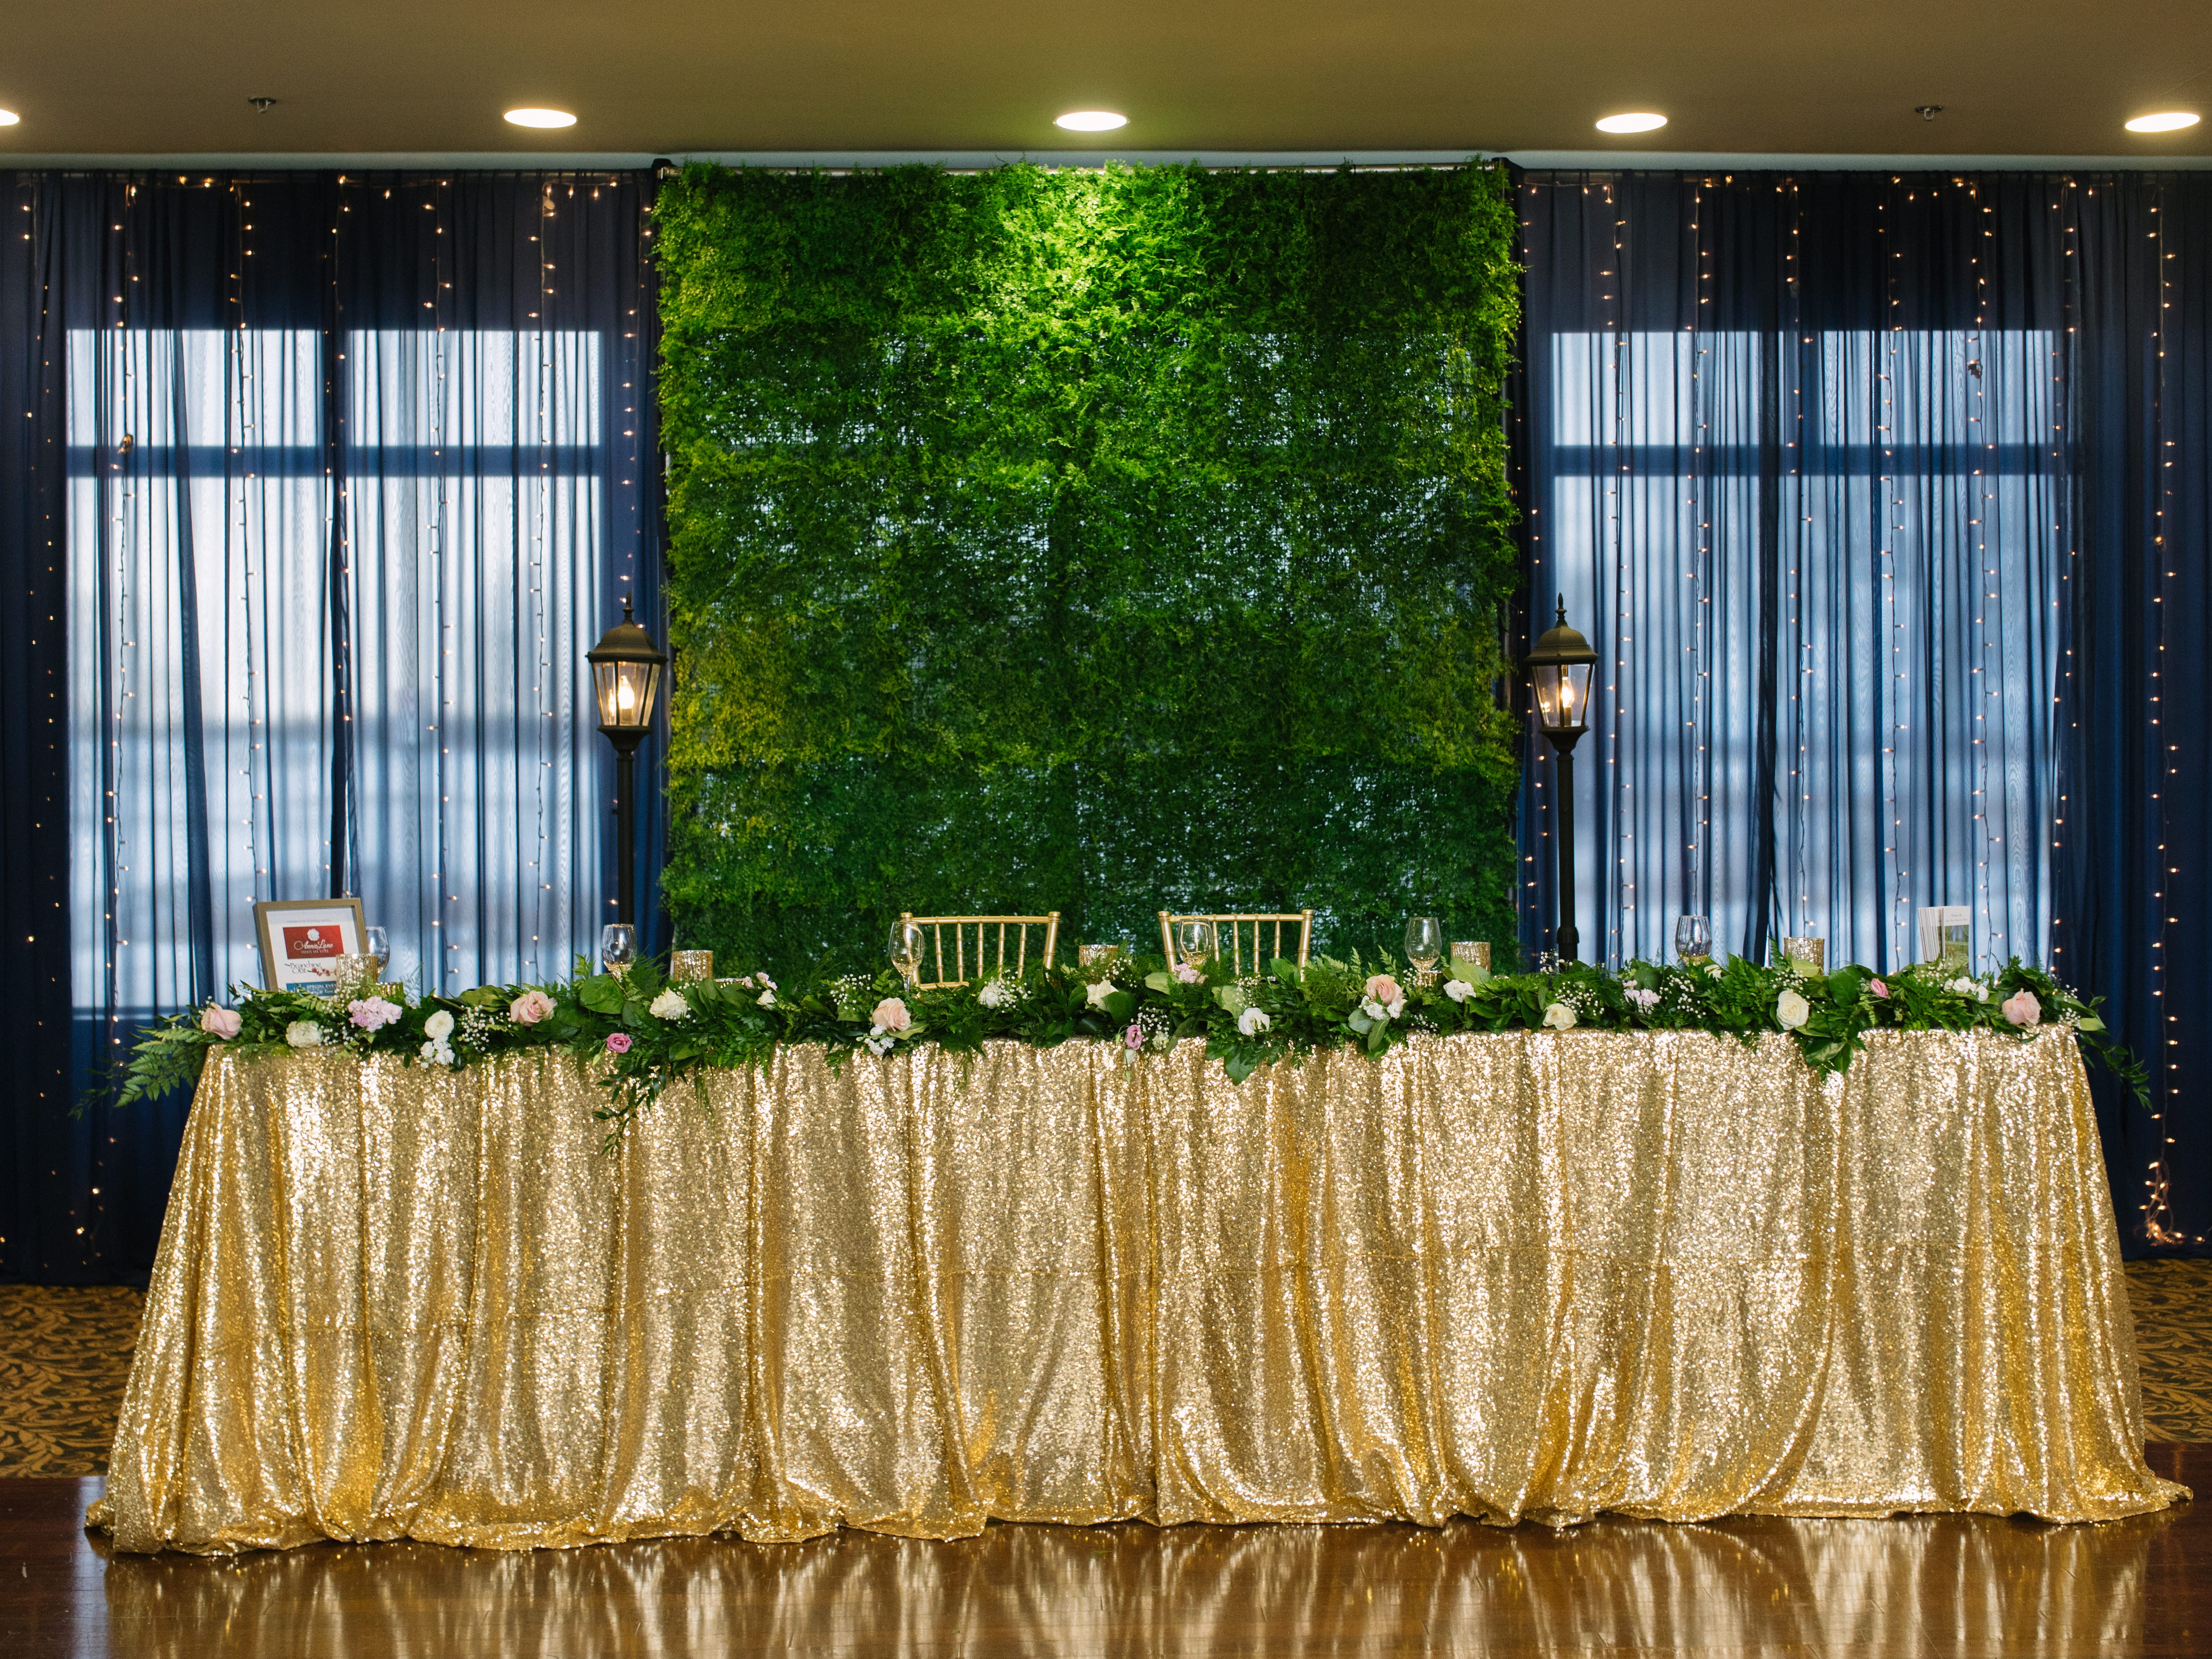 Faux Green Wall Backdrop with Navy Blue Waterfall of Lights & Street Lamps